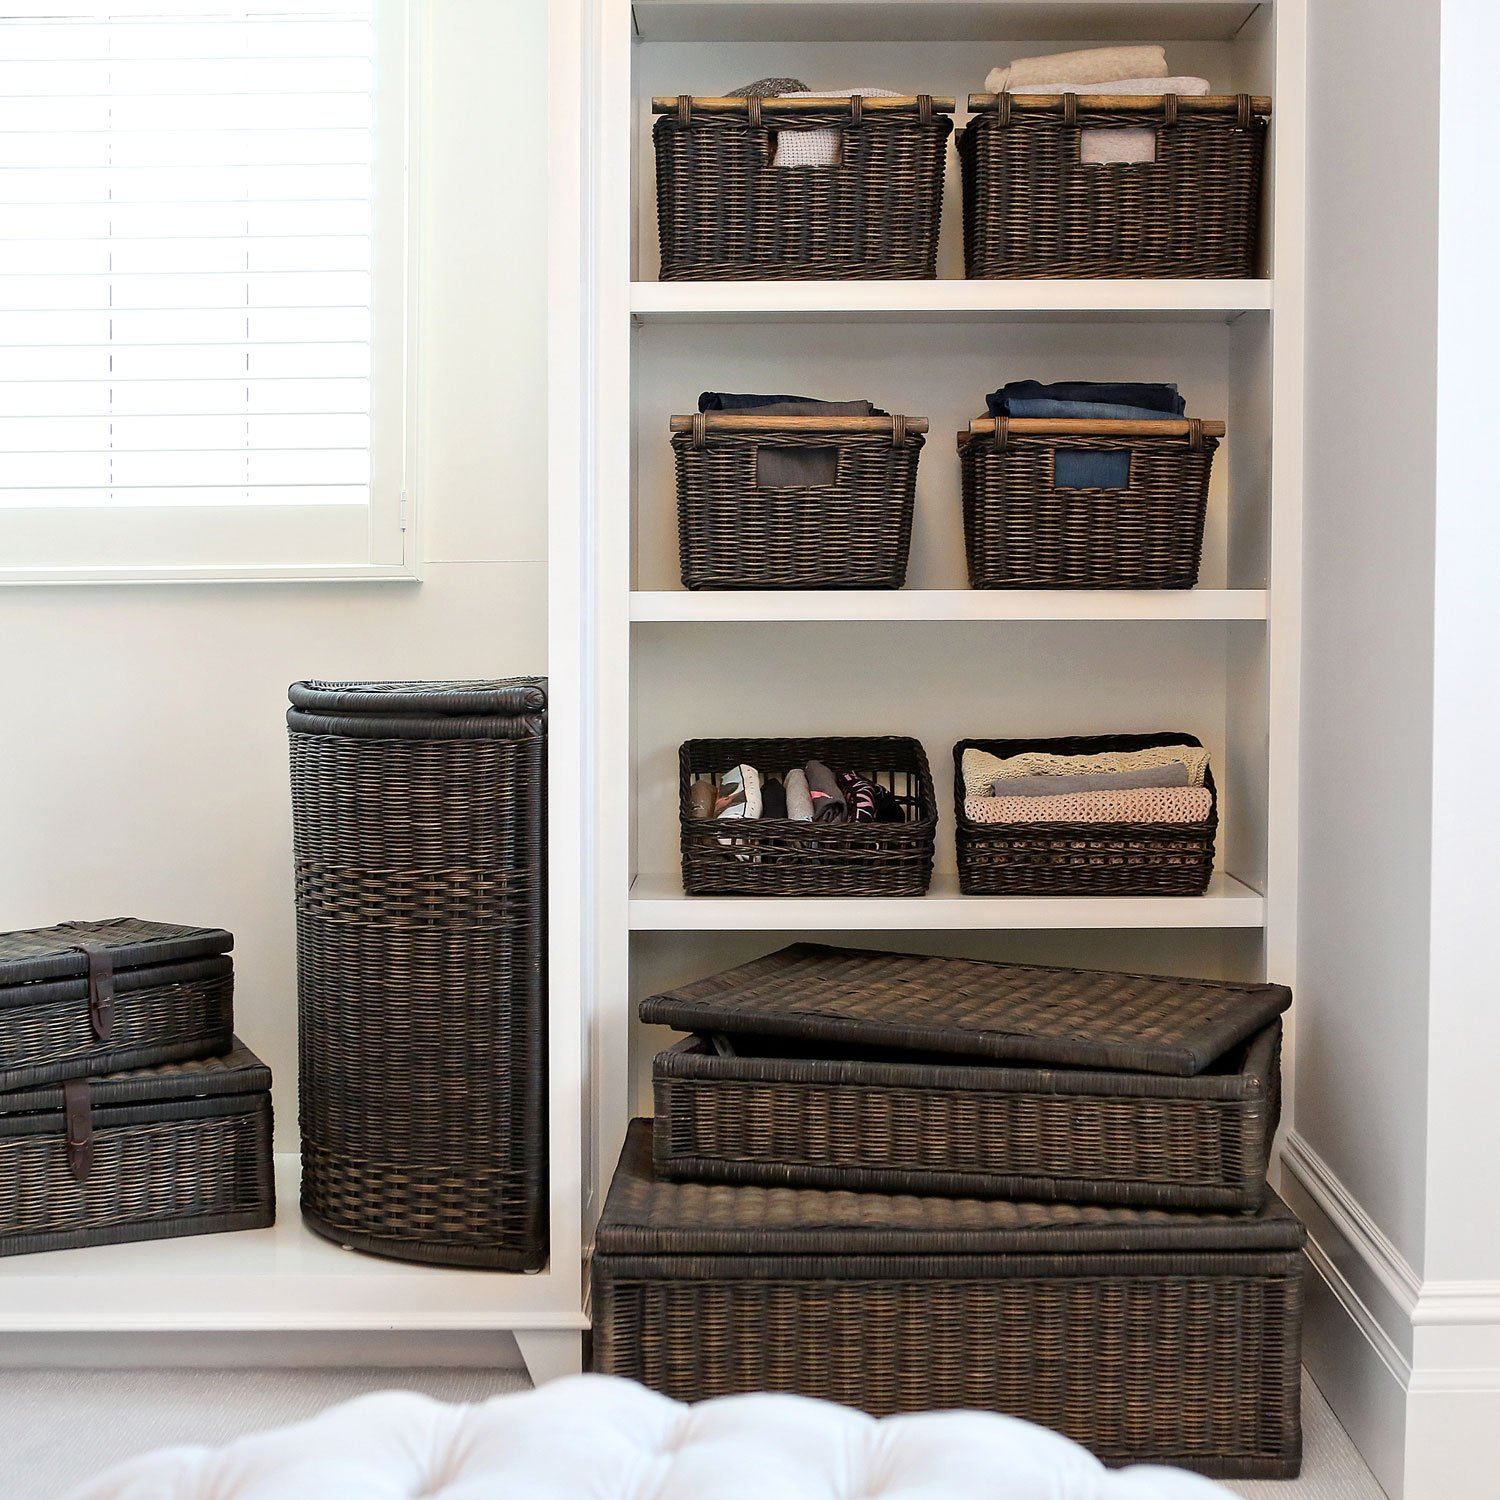 Wicker Storage Baskets For Shelves & Closets | The Basket Lady